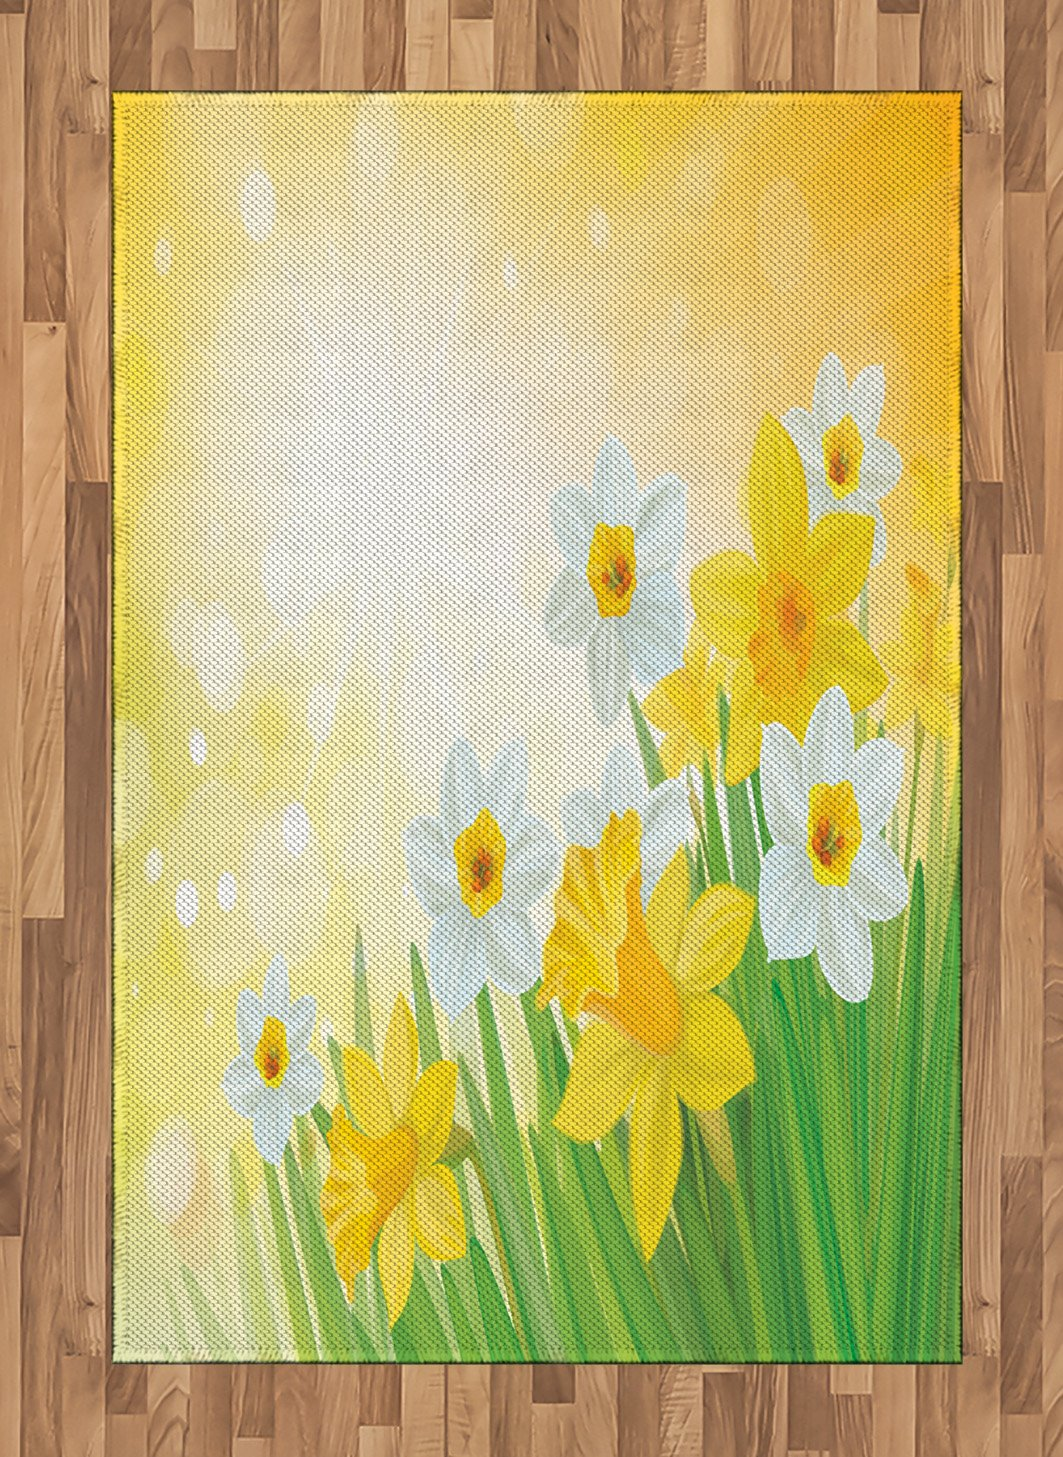 5ff94391f Ambesonne Daffodil Area Rug, Daffodils Garden Narcissus Rebirth and New  Beginnings Celebration Graphic, Flat Woven Accent Rug for Living Room  Bedroom Dining ...